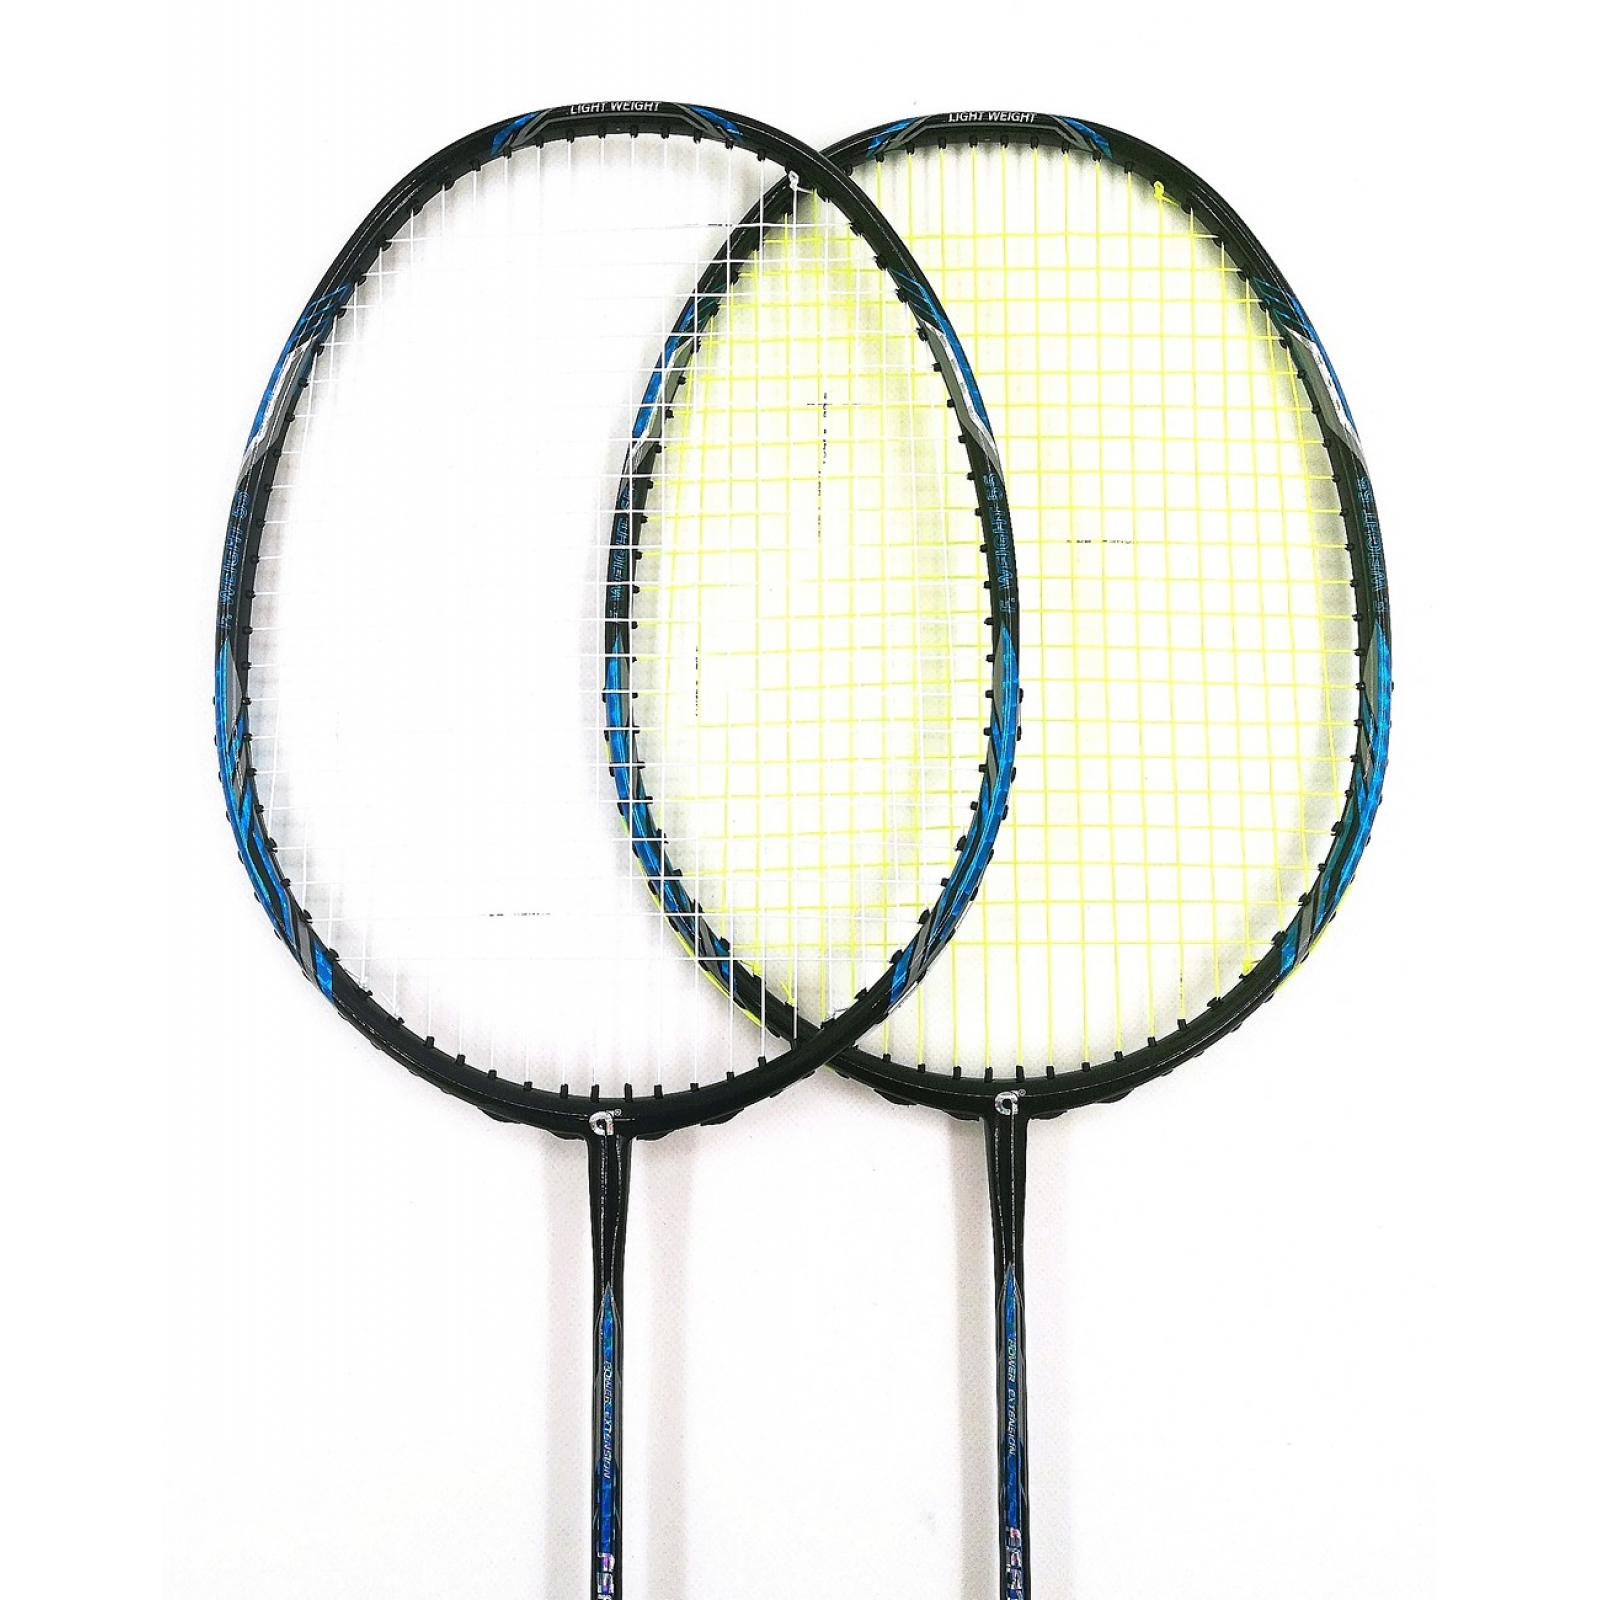 30% OFF 2x APACS FEATHER WEIGHT 55 BLACK BADMINTON RACKET ...